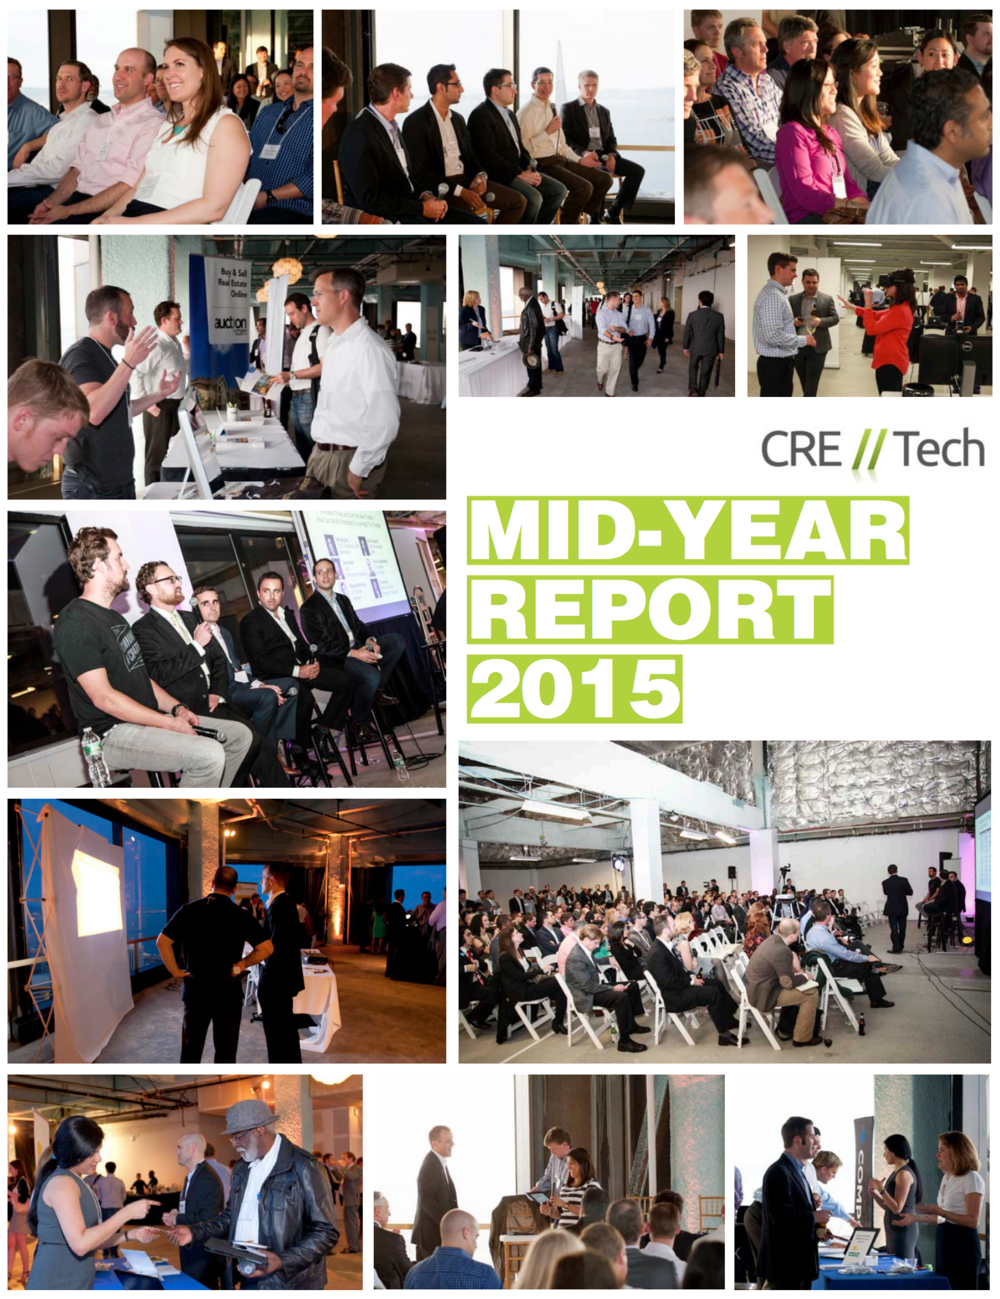 CRE // Tech Mid-Year Report 2015